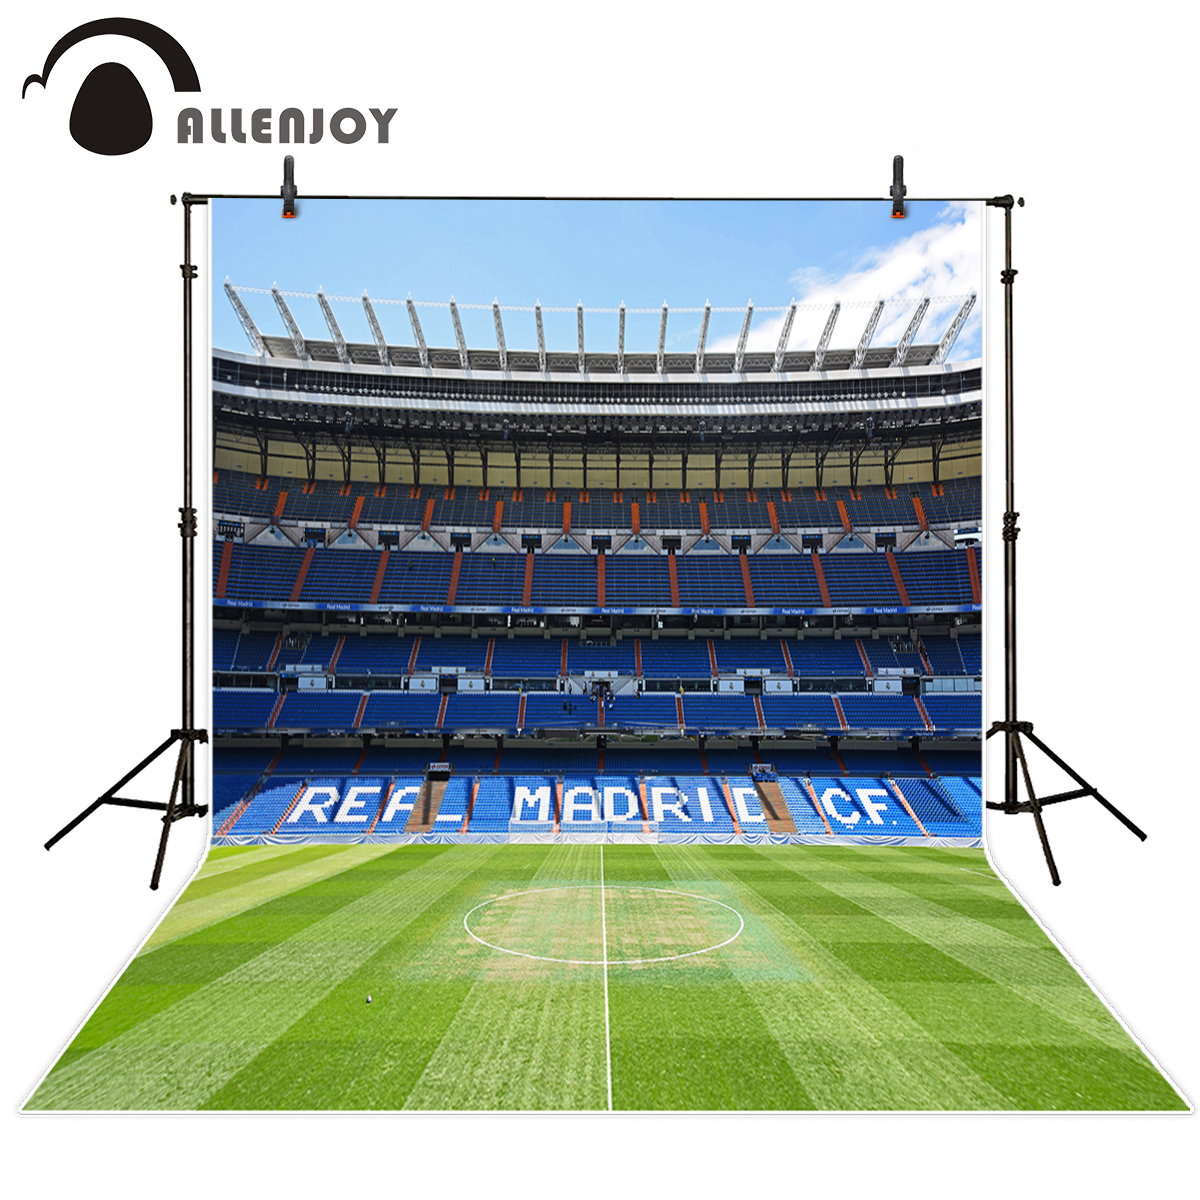 Allenjoy photocall real football field customize background birthday celebration communion Photocall for weddings girls birthday backdrops baby shower background black white stripe cosmetic invitation celebration table banner party allenjoy